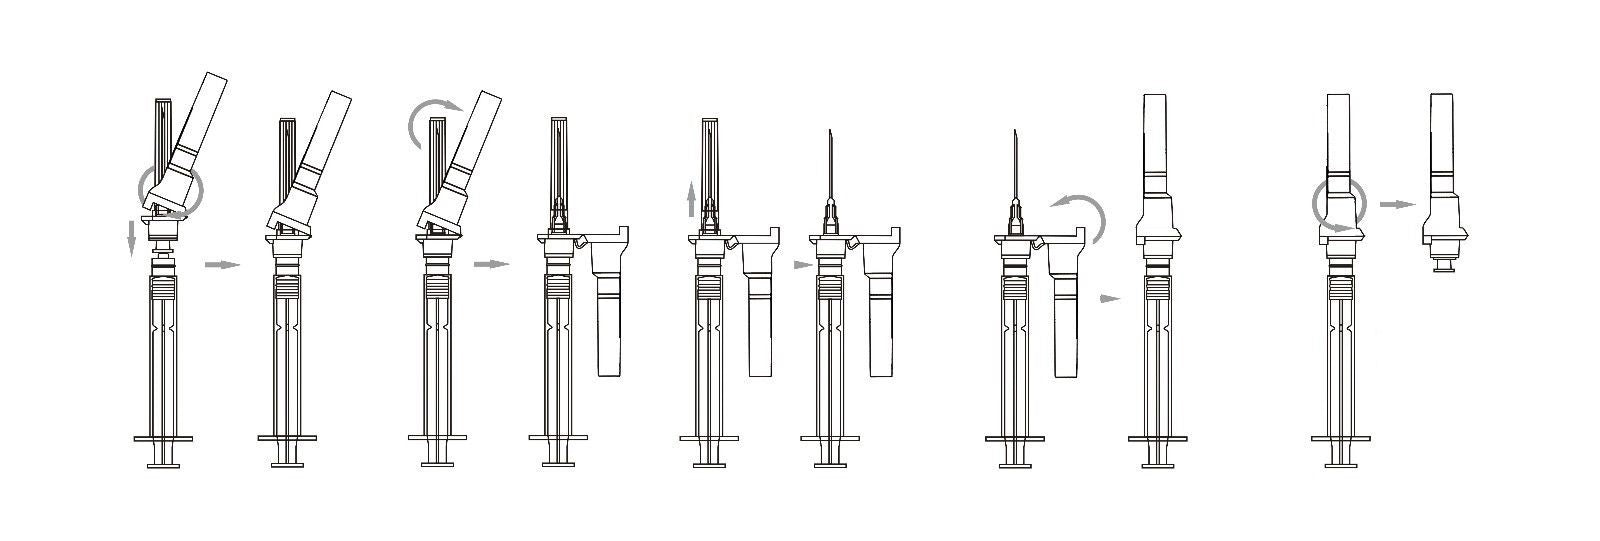 Rays 5ml Syringe With Safety 22G Hypodermic Needle